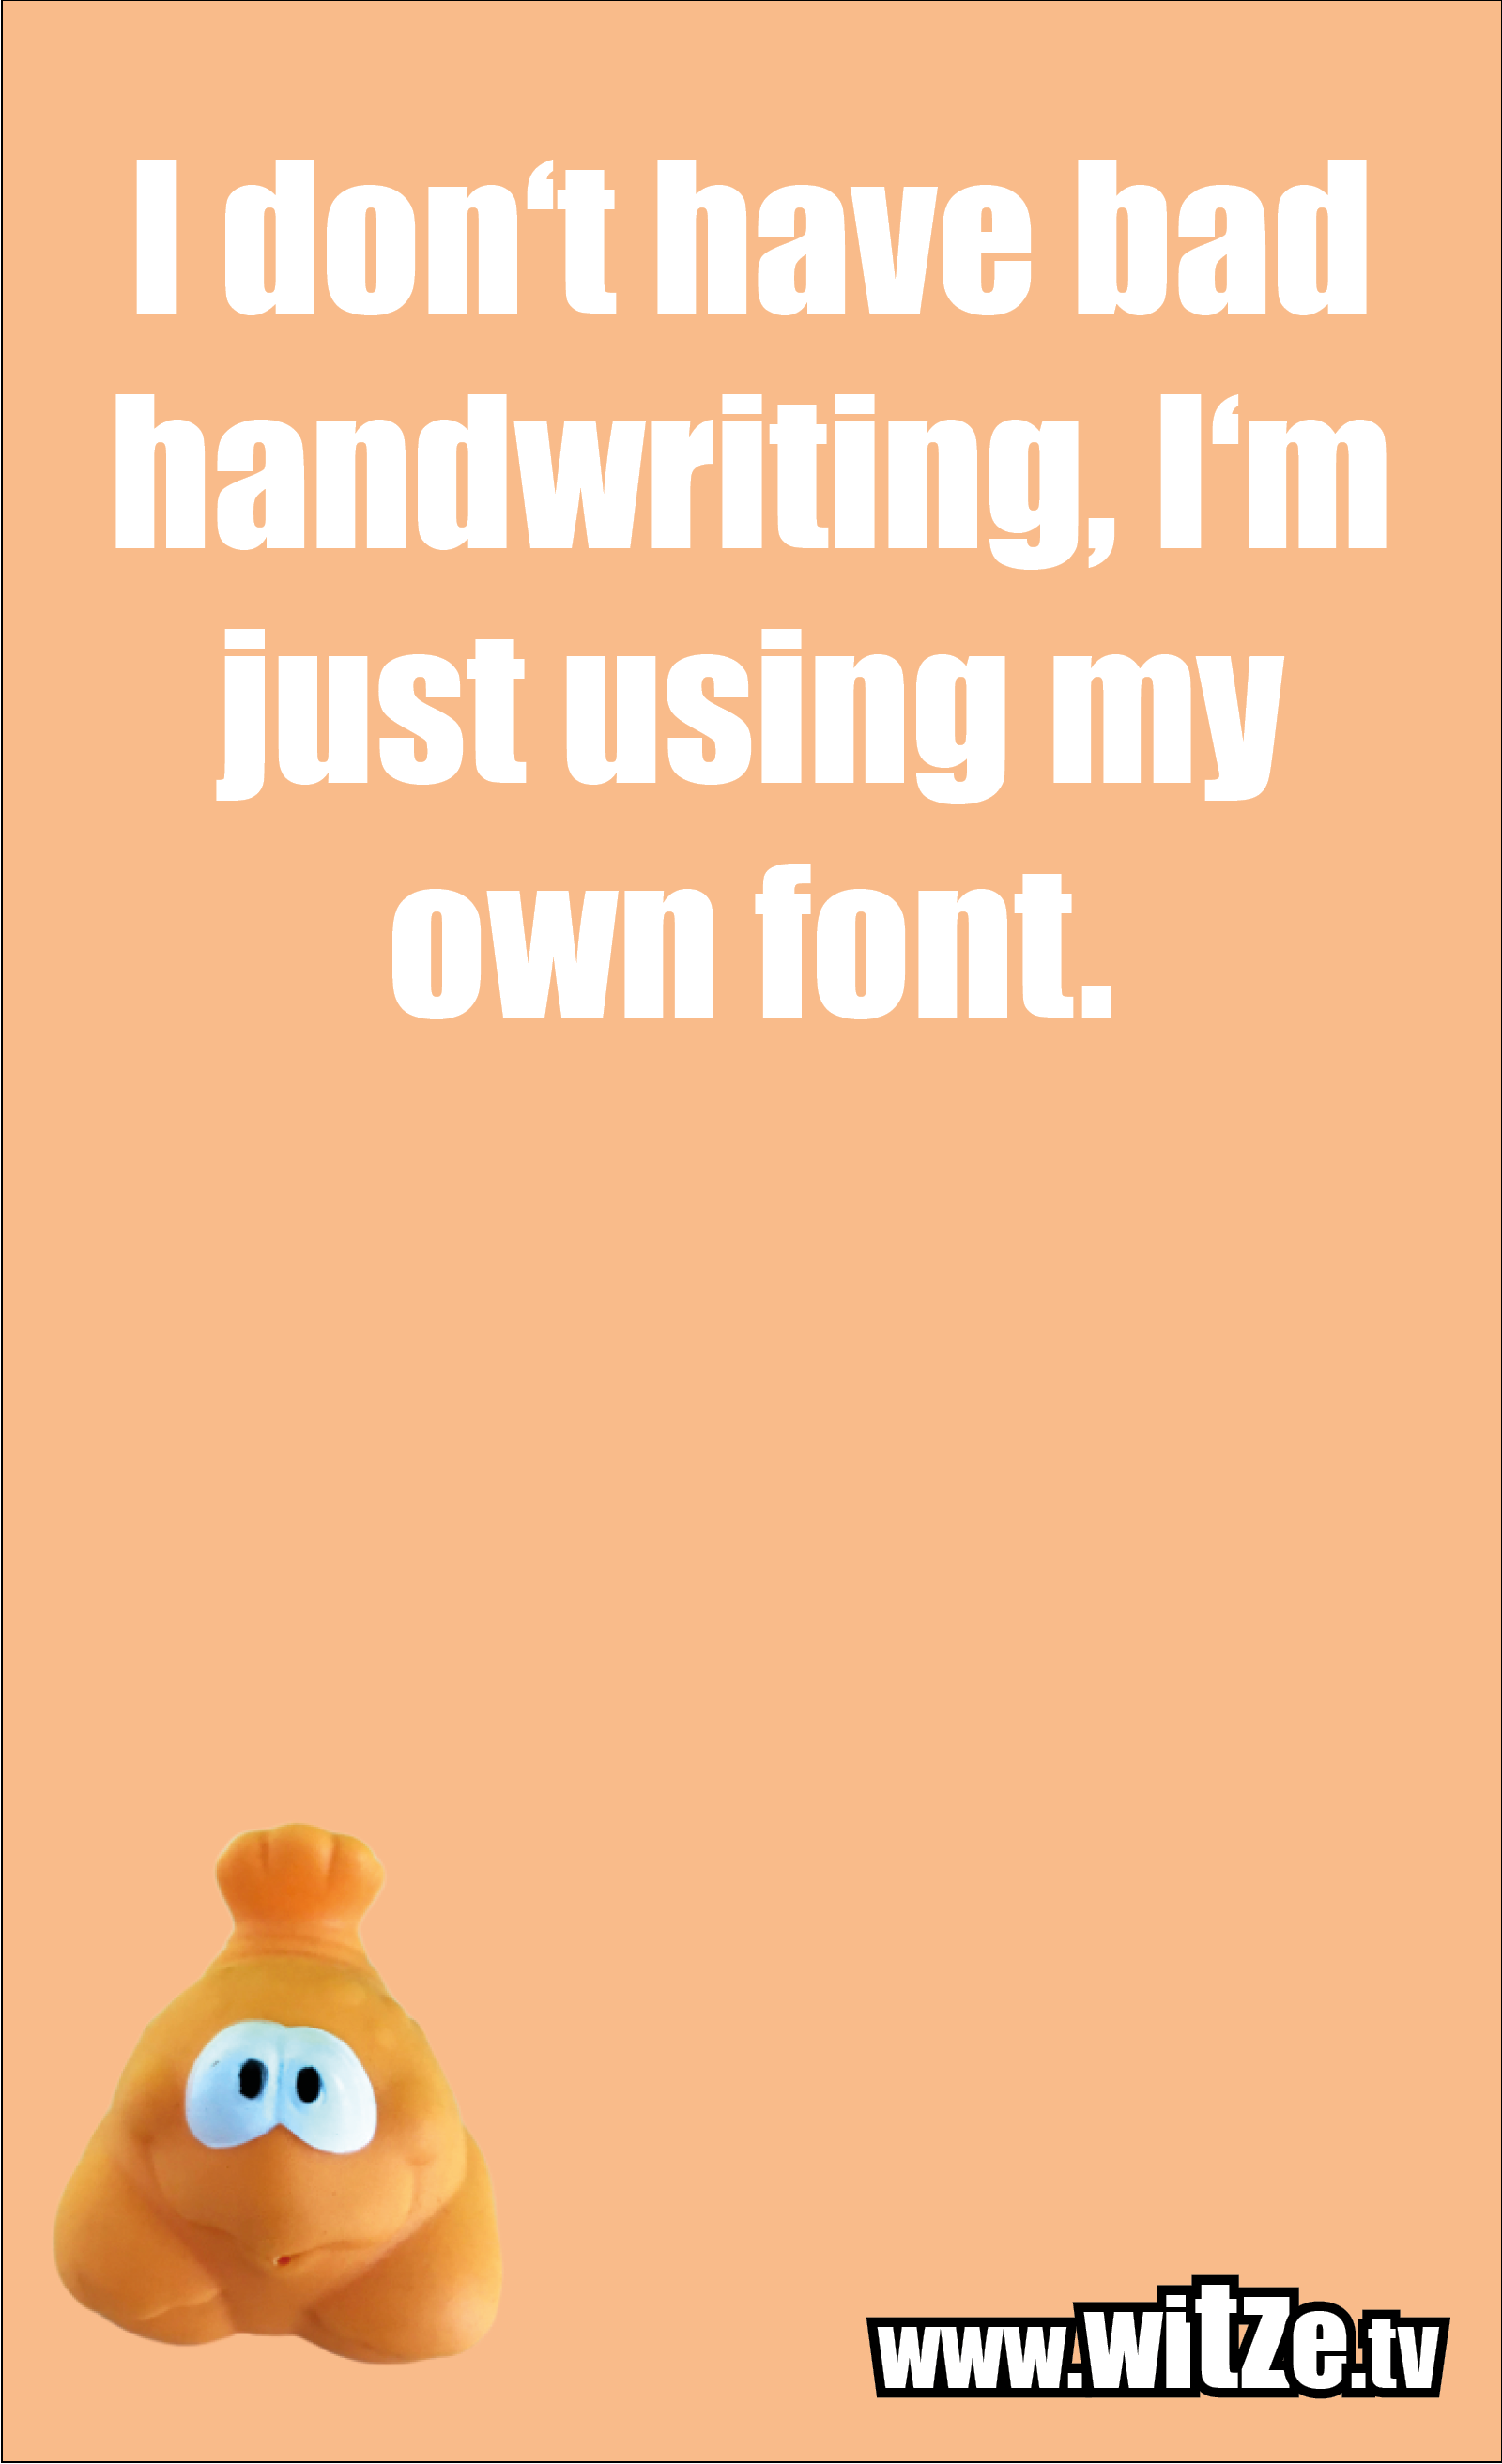 Funny sayings… I don't have bad handwriting, I'm just using my own font.